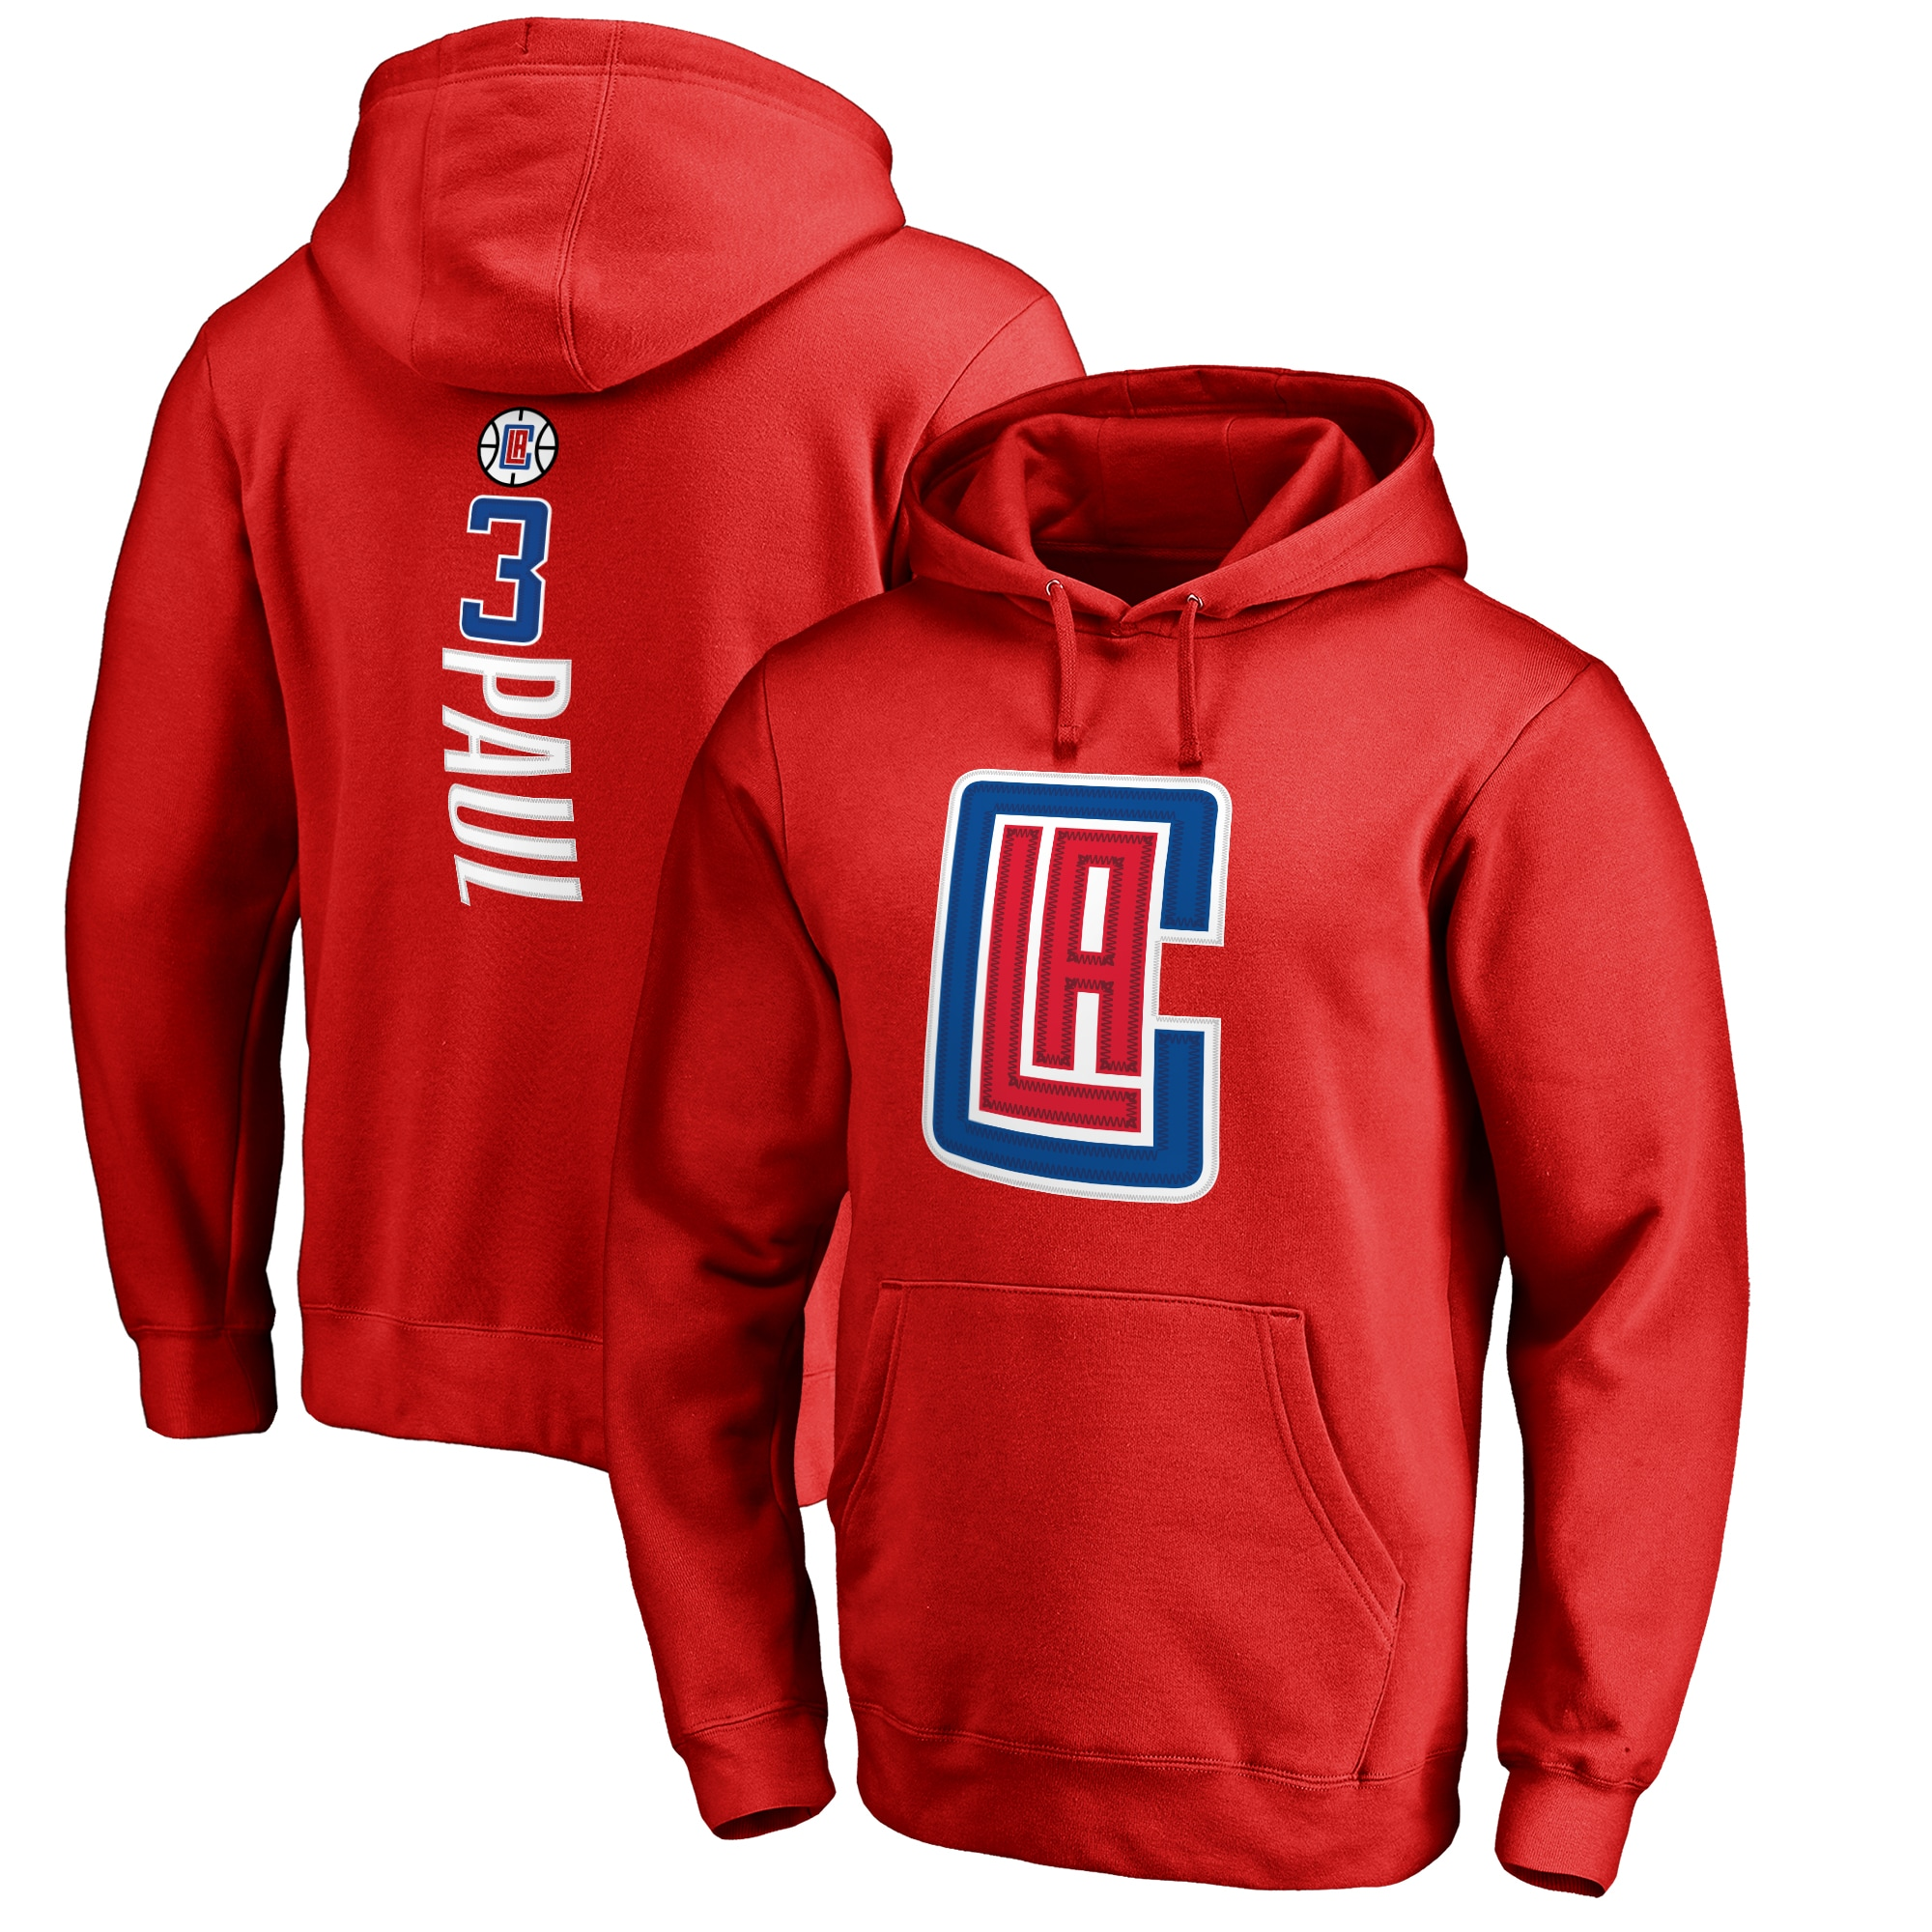 Chris Paul LA Clippers Fanatics Branded Backer 3 Pullover Hoodie - Red